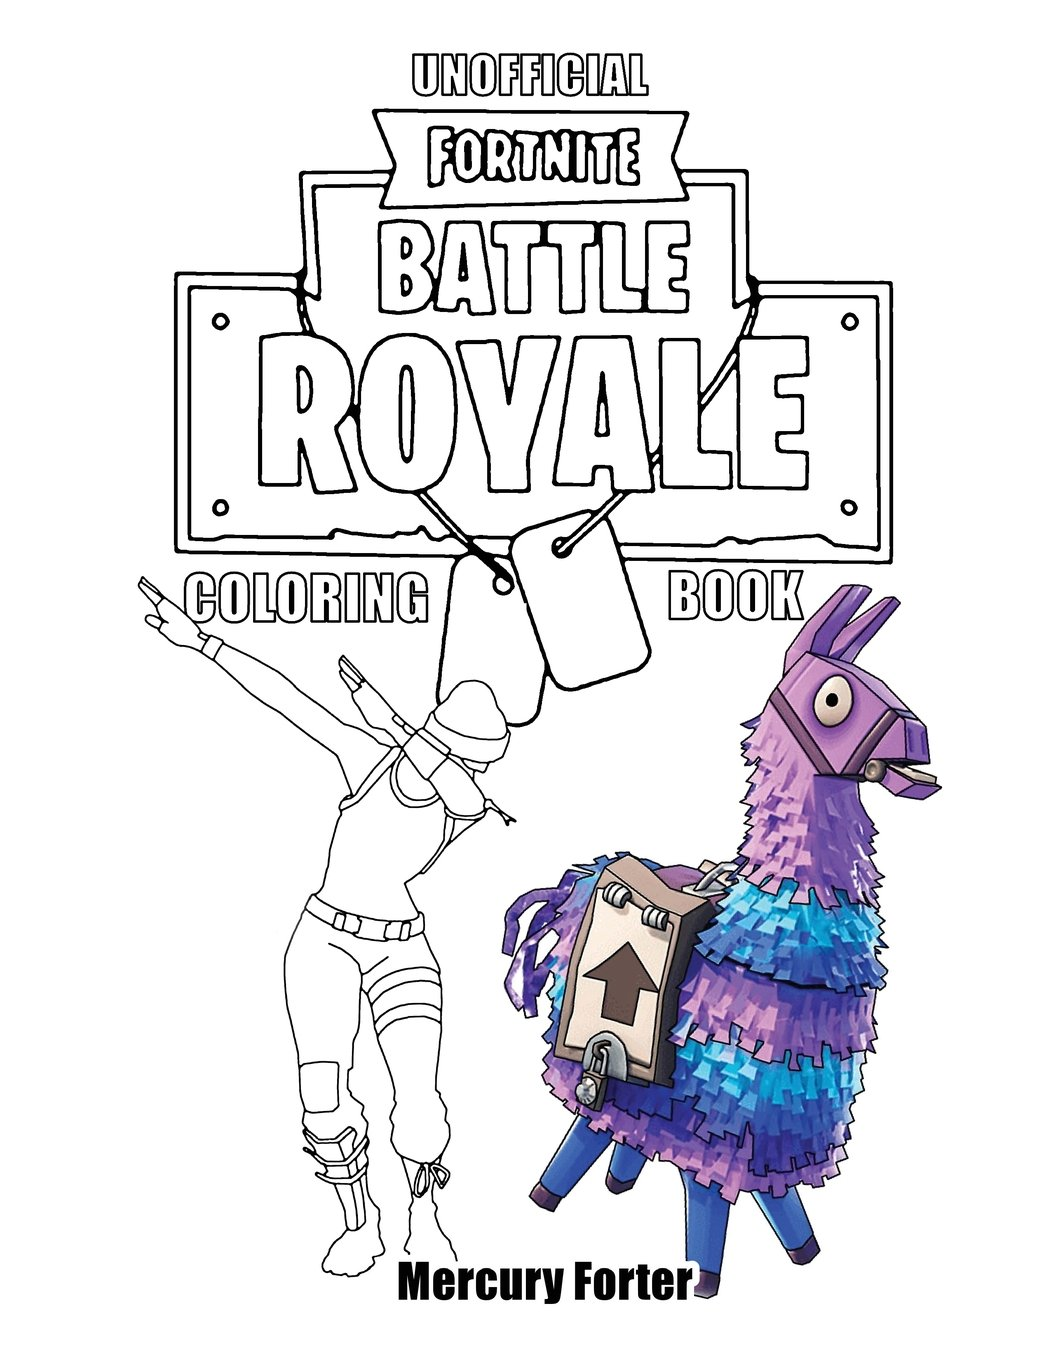 Fortnite Coloring Book Unofficial Fortnite Coloring Book For Kids